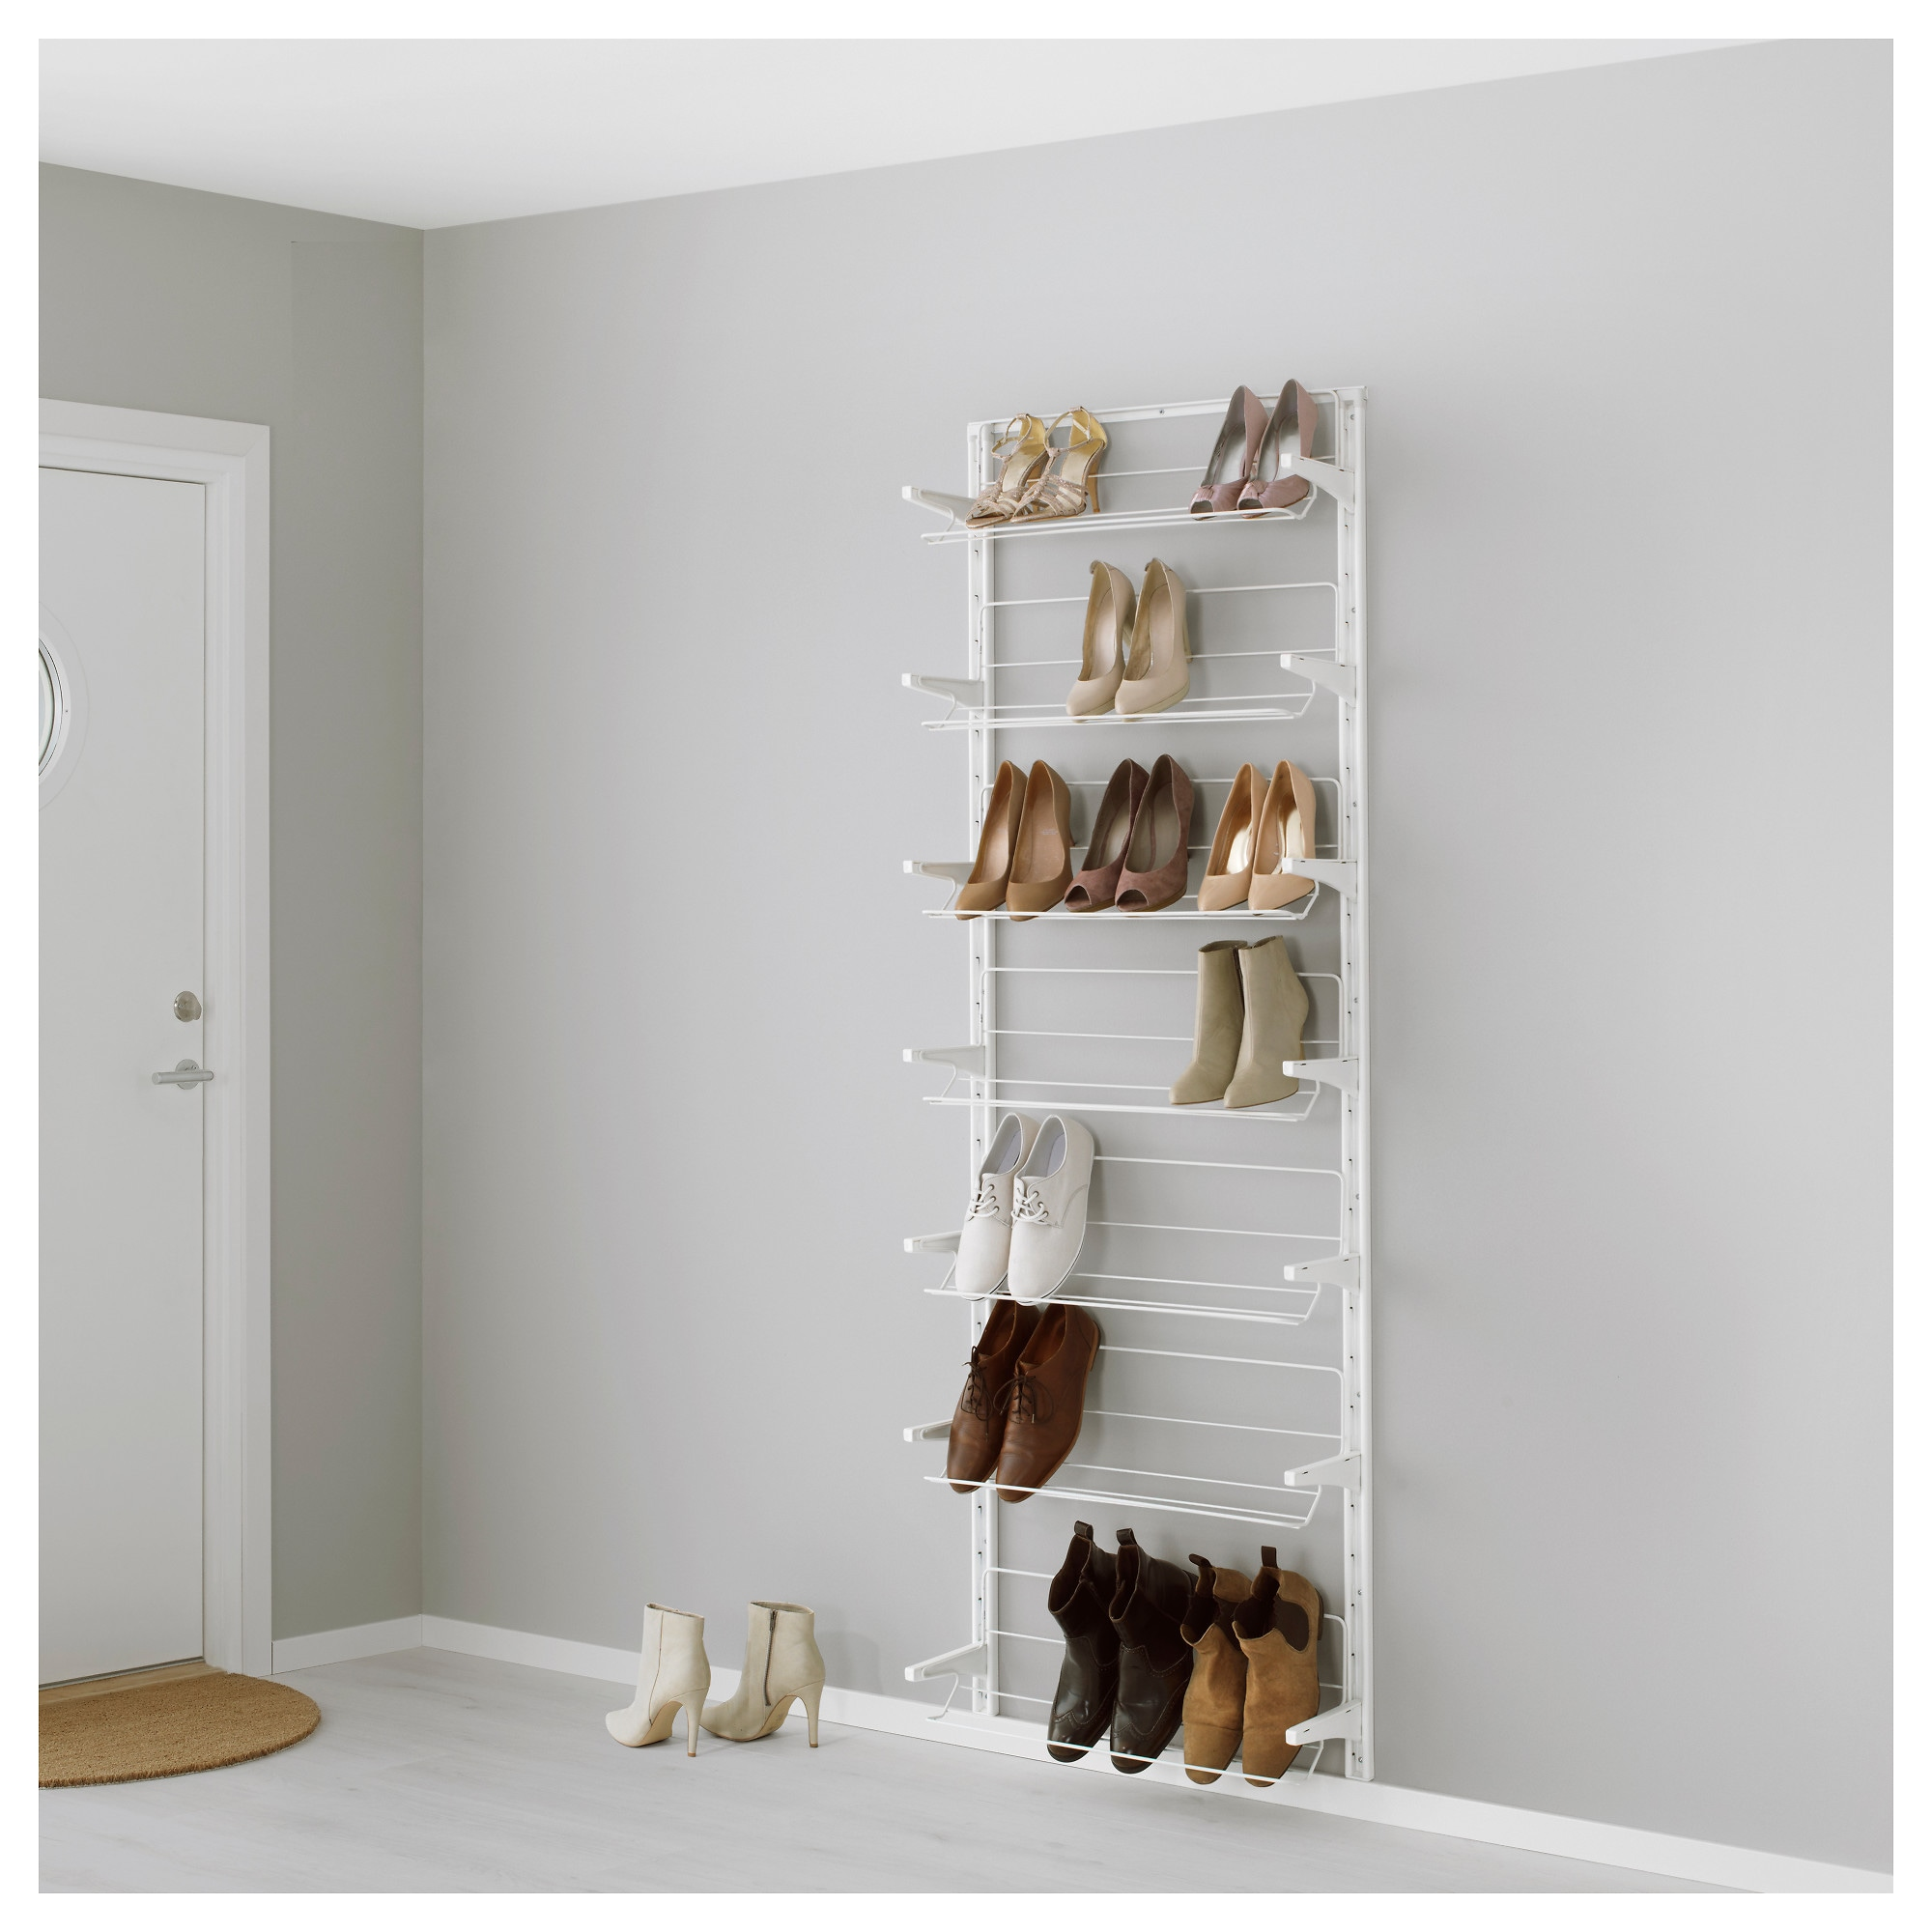 ALGOT Wall Upright Shoe Organizer